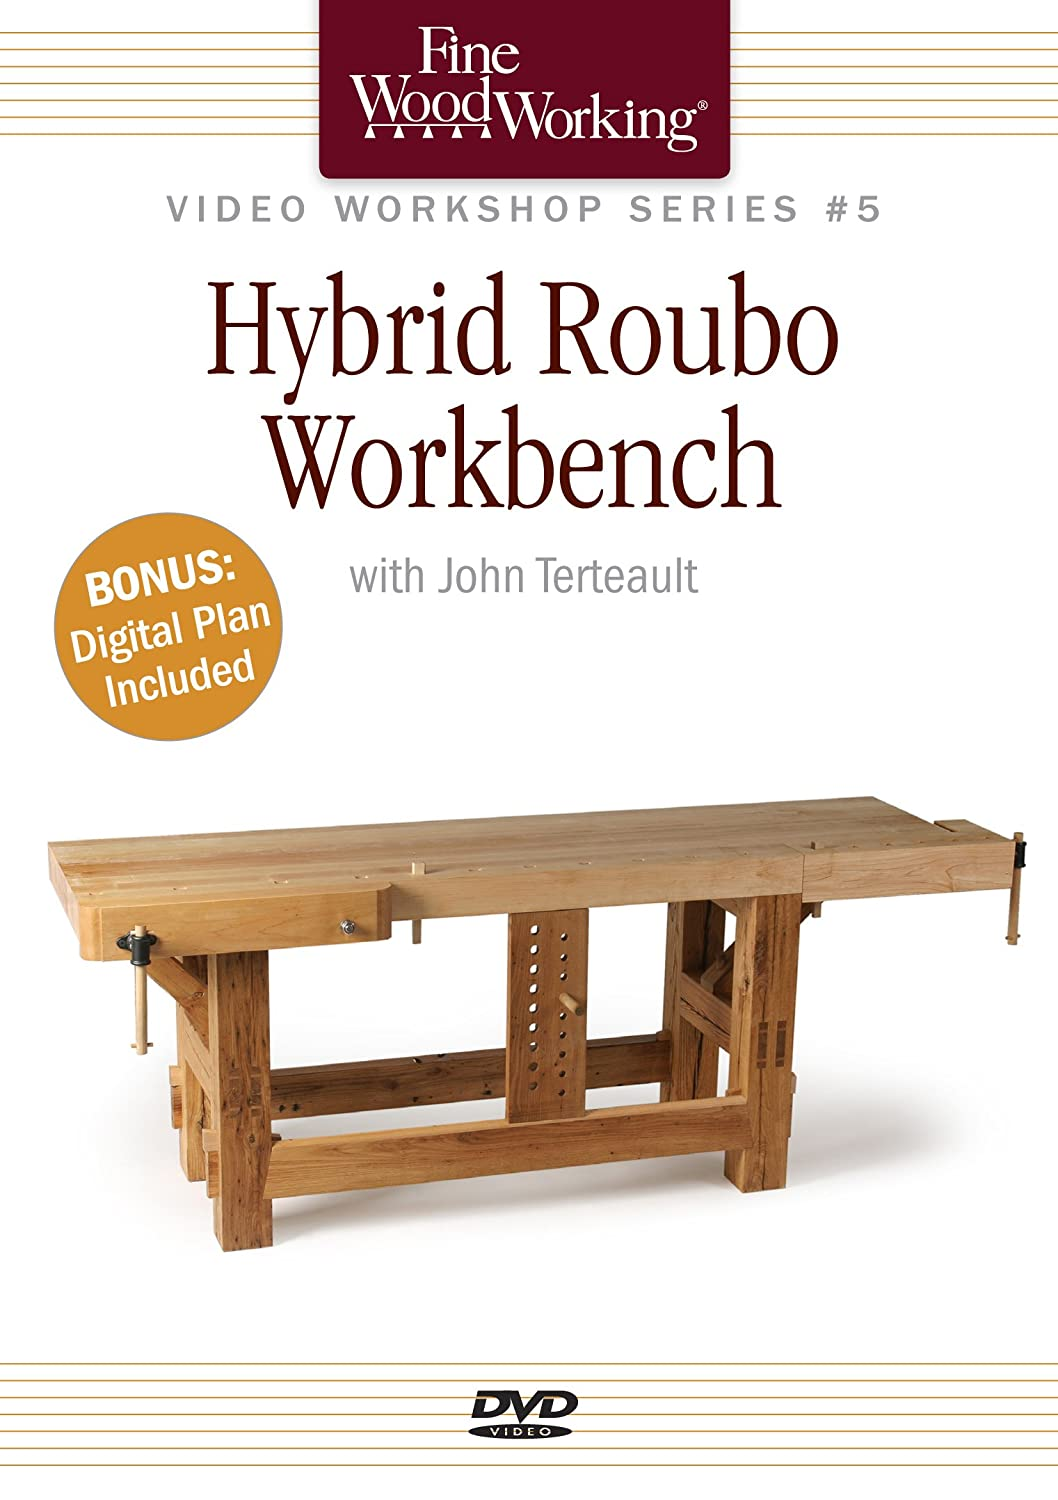 Hybrid Roubo Workbench Fine Woodworking Video Workshops